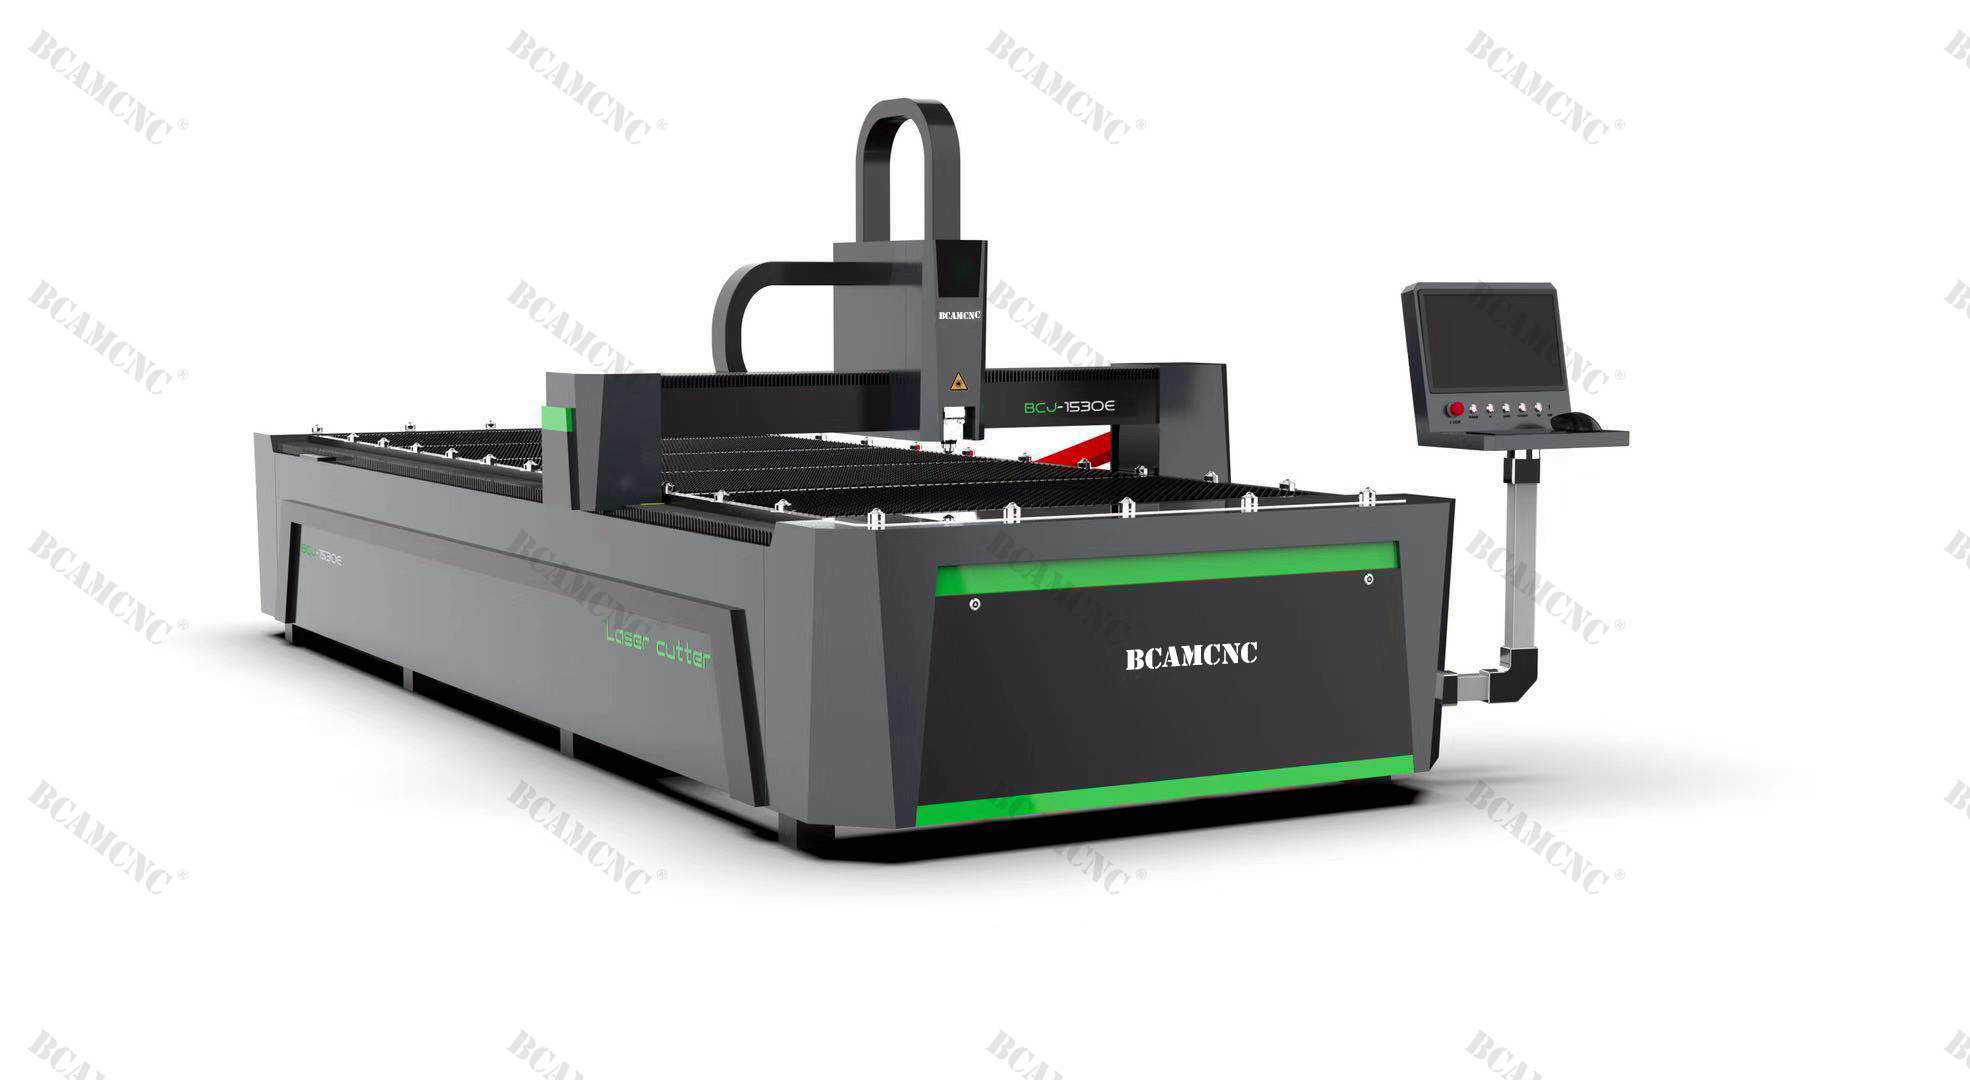 1000w laser power cut mild steel cnc fiber laser cutting machine metal sheet laser cutting machine for sale 12